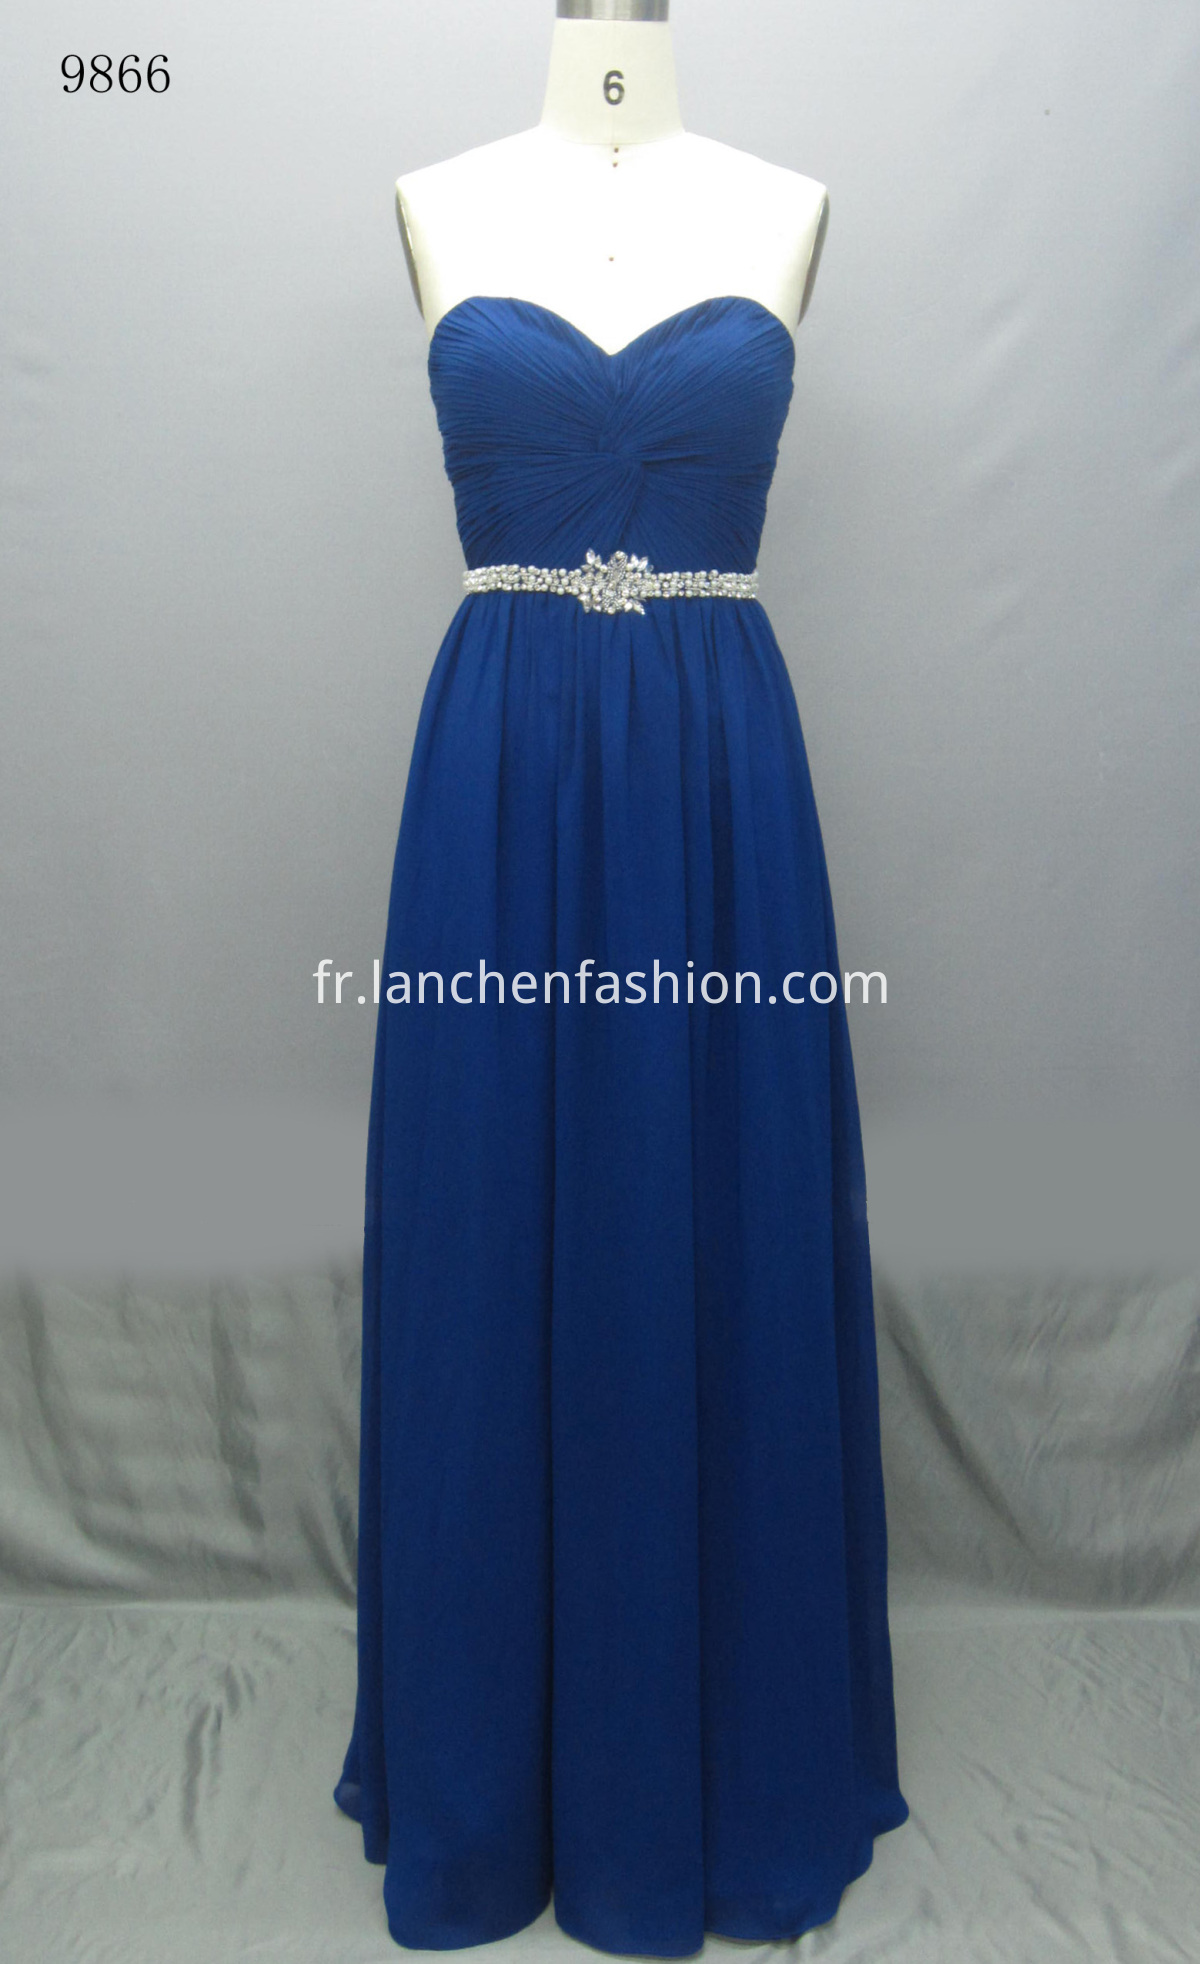 Elegant Maxi Dress ROYAL